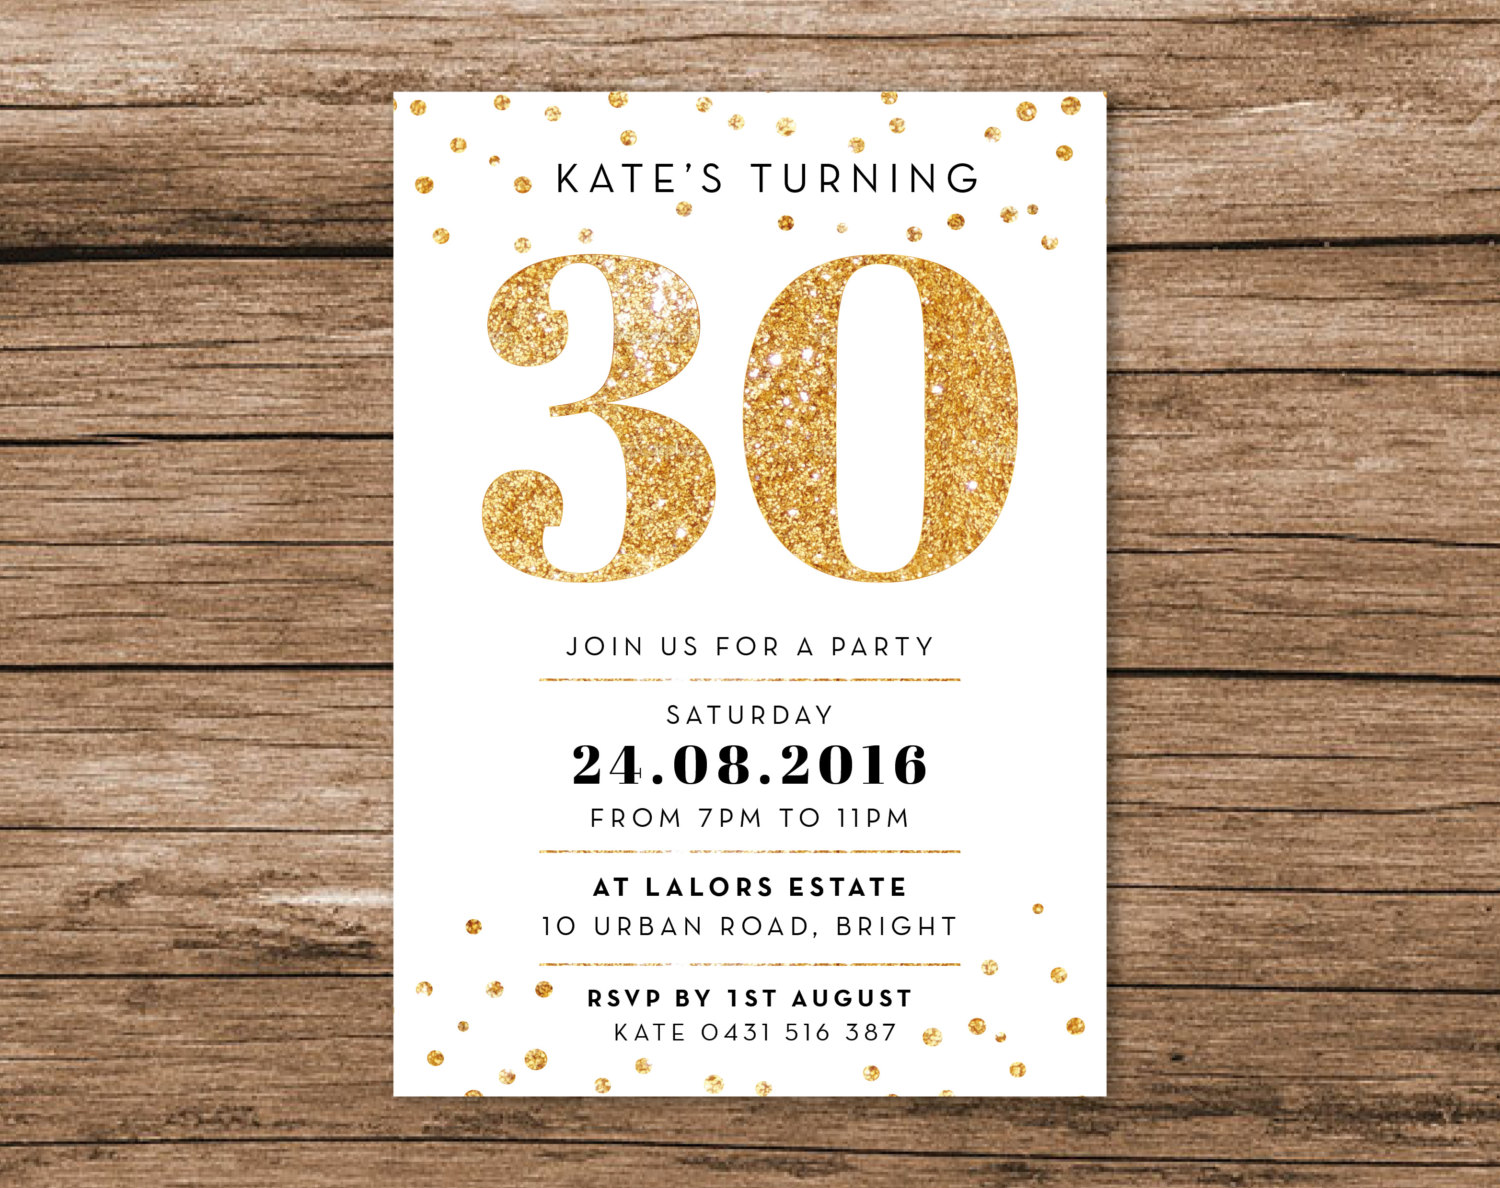 30th birthday invitation designs ; 30th-birthday-invitations-to-get-ideas-how-to-make-your-own-birthday-invitation-design-4